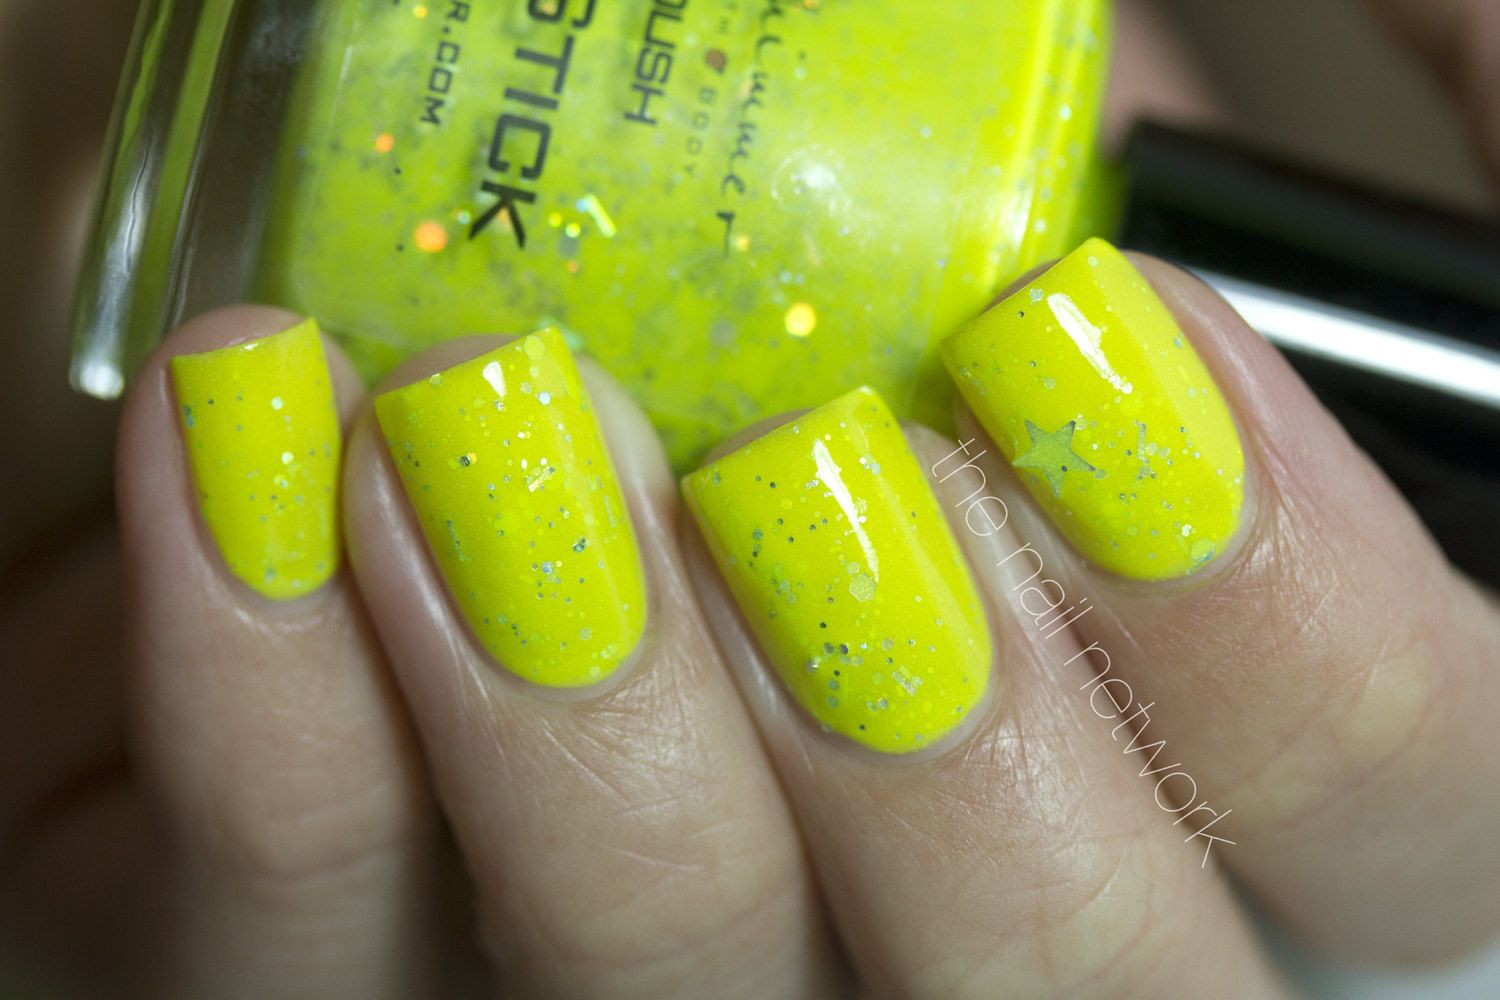 Glow Stick Glow In The Dark Neon Yellow Nail Polish by KBShimmer ...